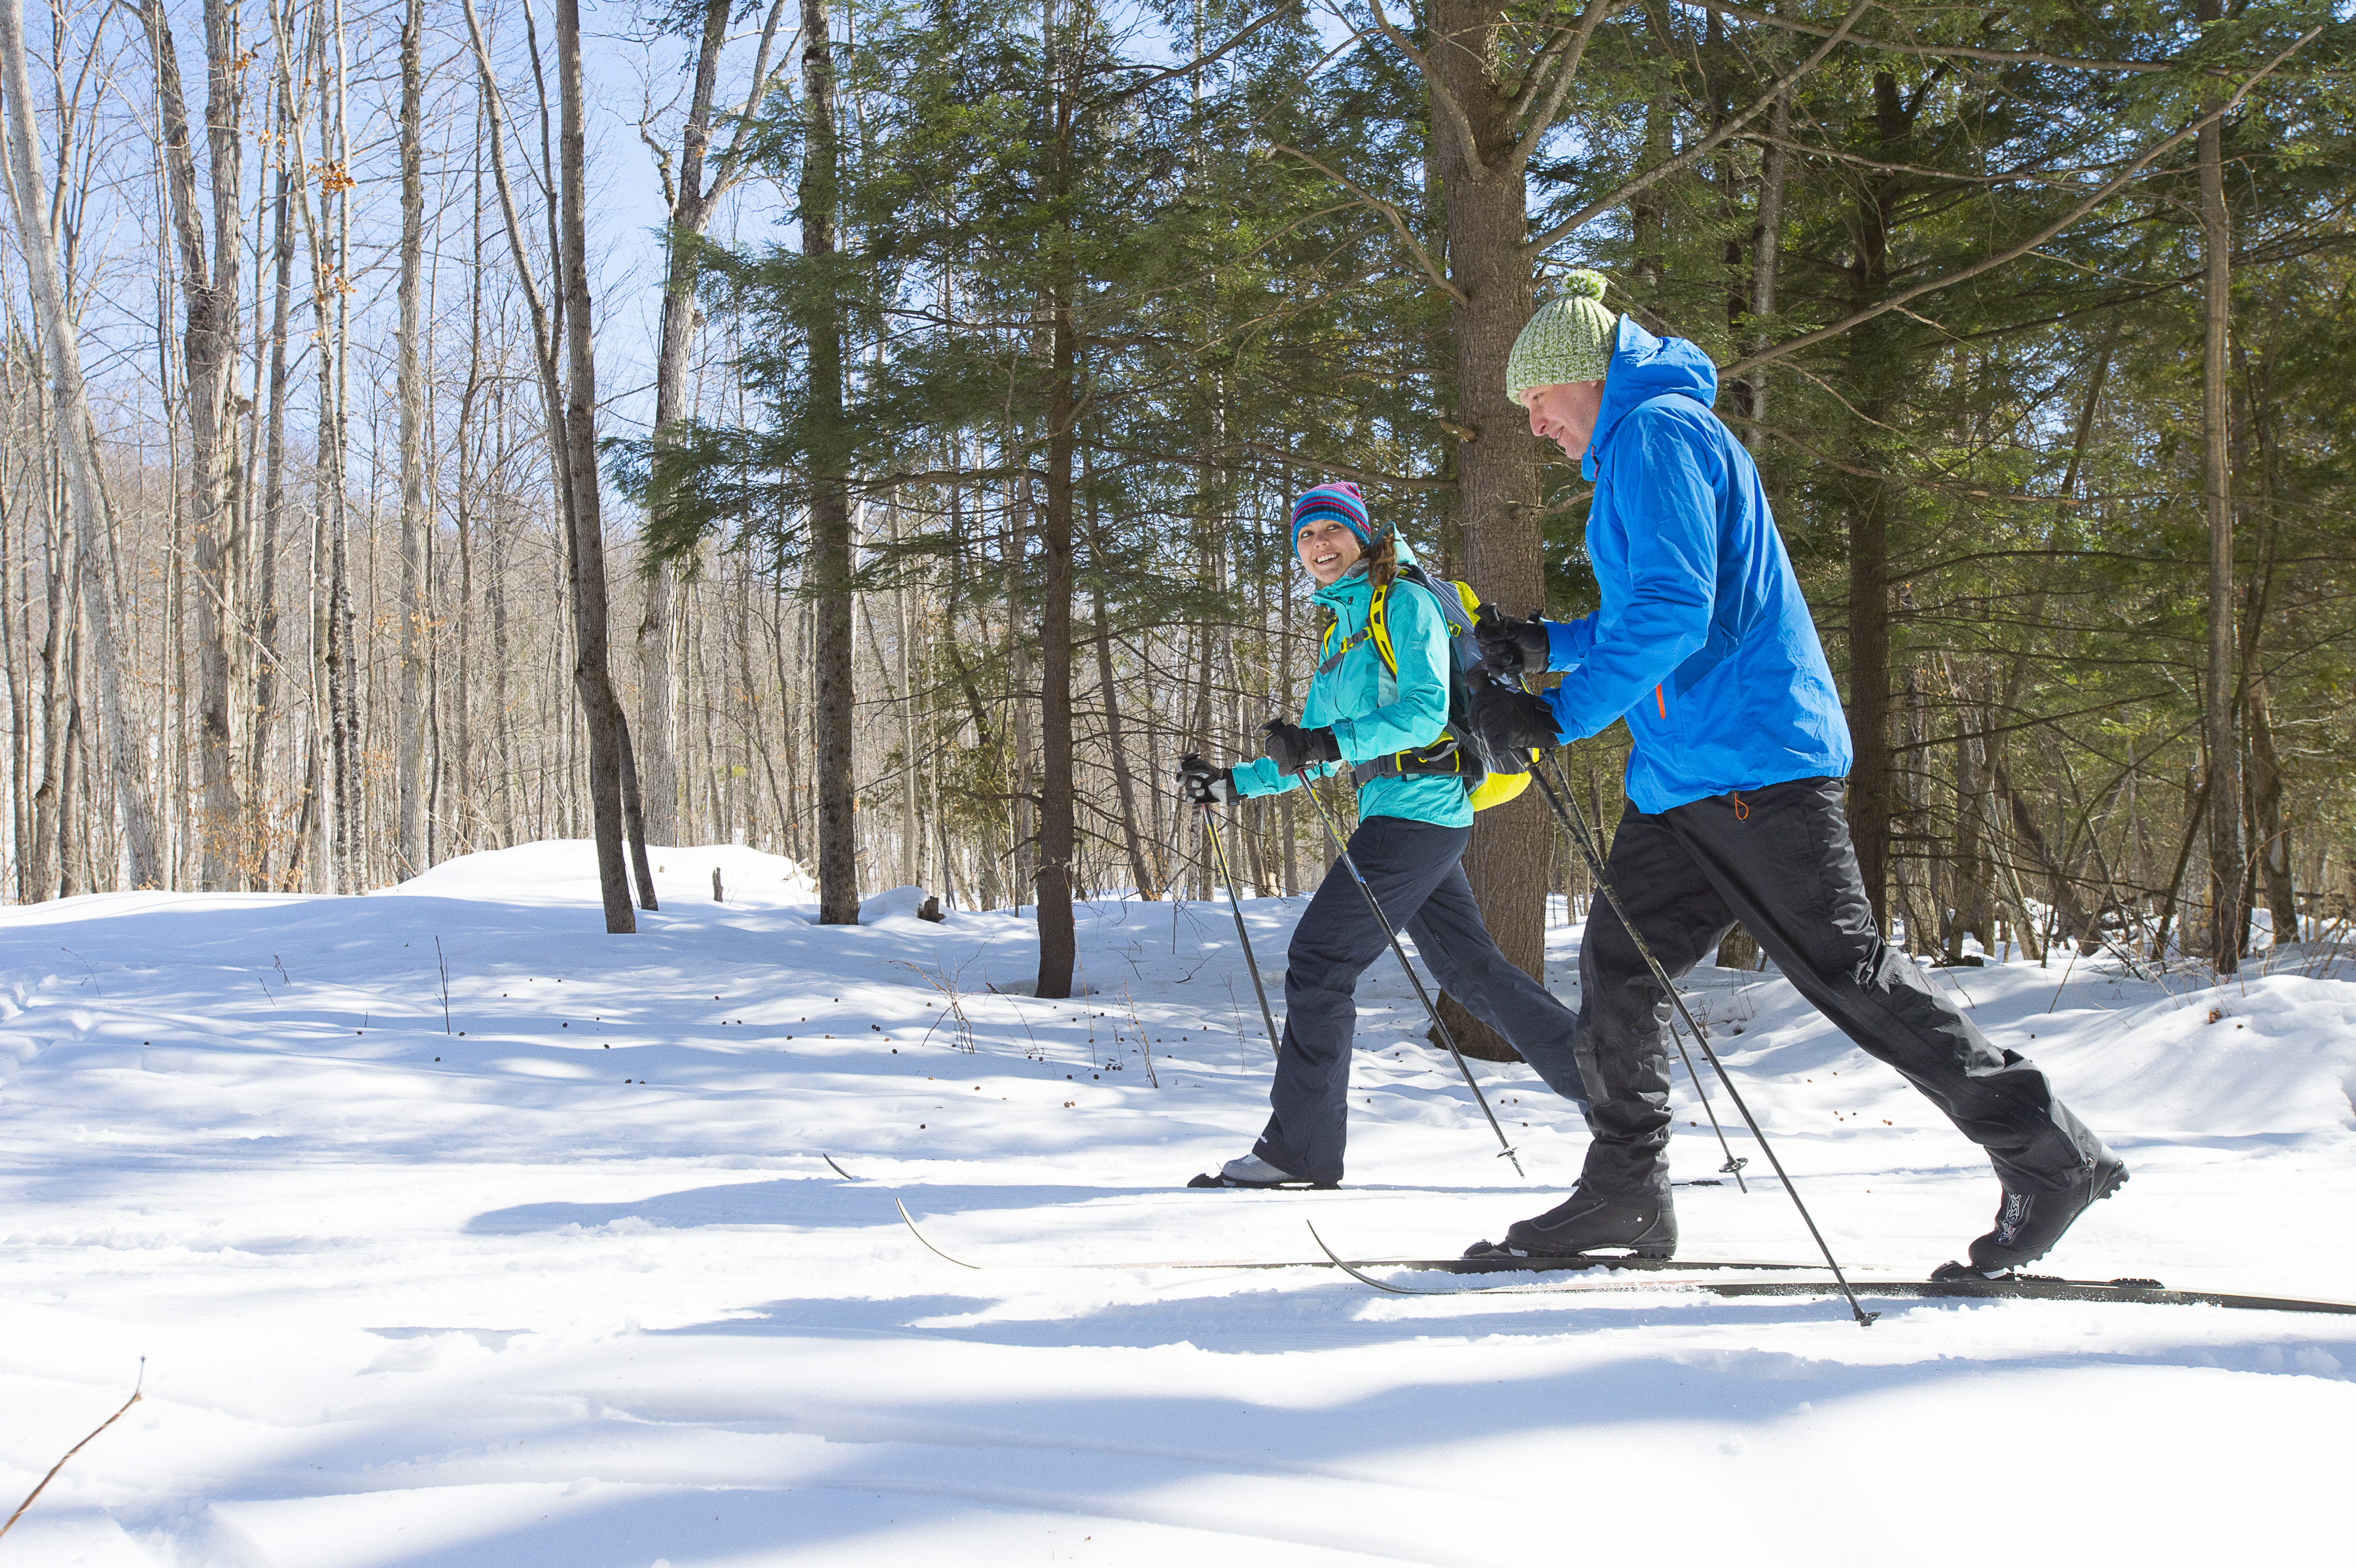 RECREATION _ OHTO PHOTOSHOOT _ SPORTS _ CROSS COUNTRY SKIING _ WINTER _ CREDIT TO TREVOR LUSH _ LIMITED PERMISSIONS _ 2014 (7)